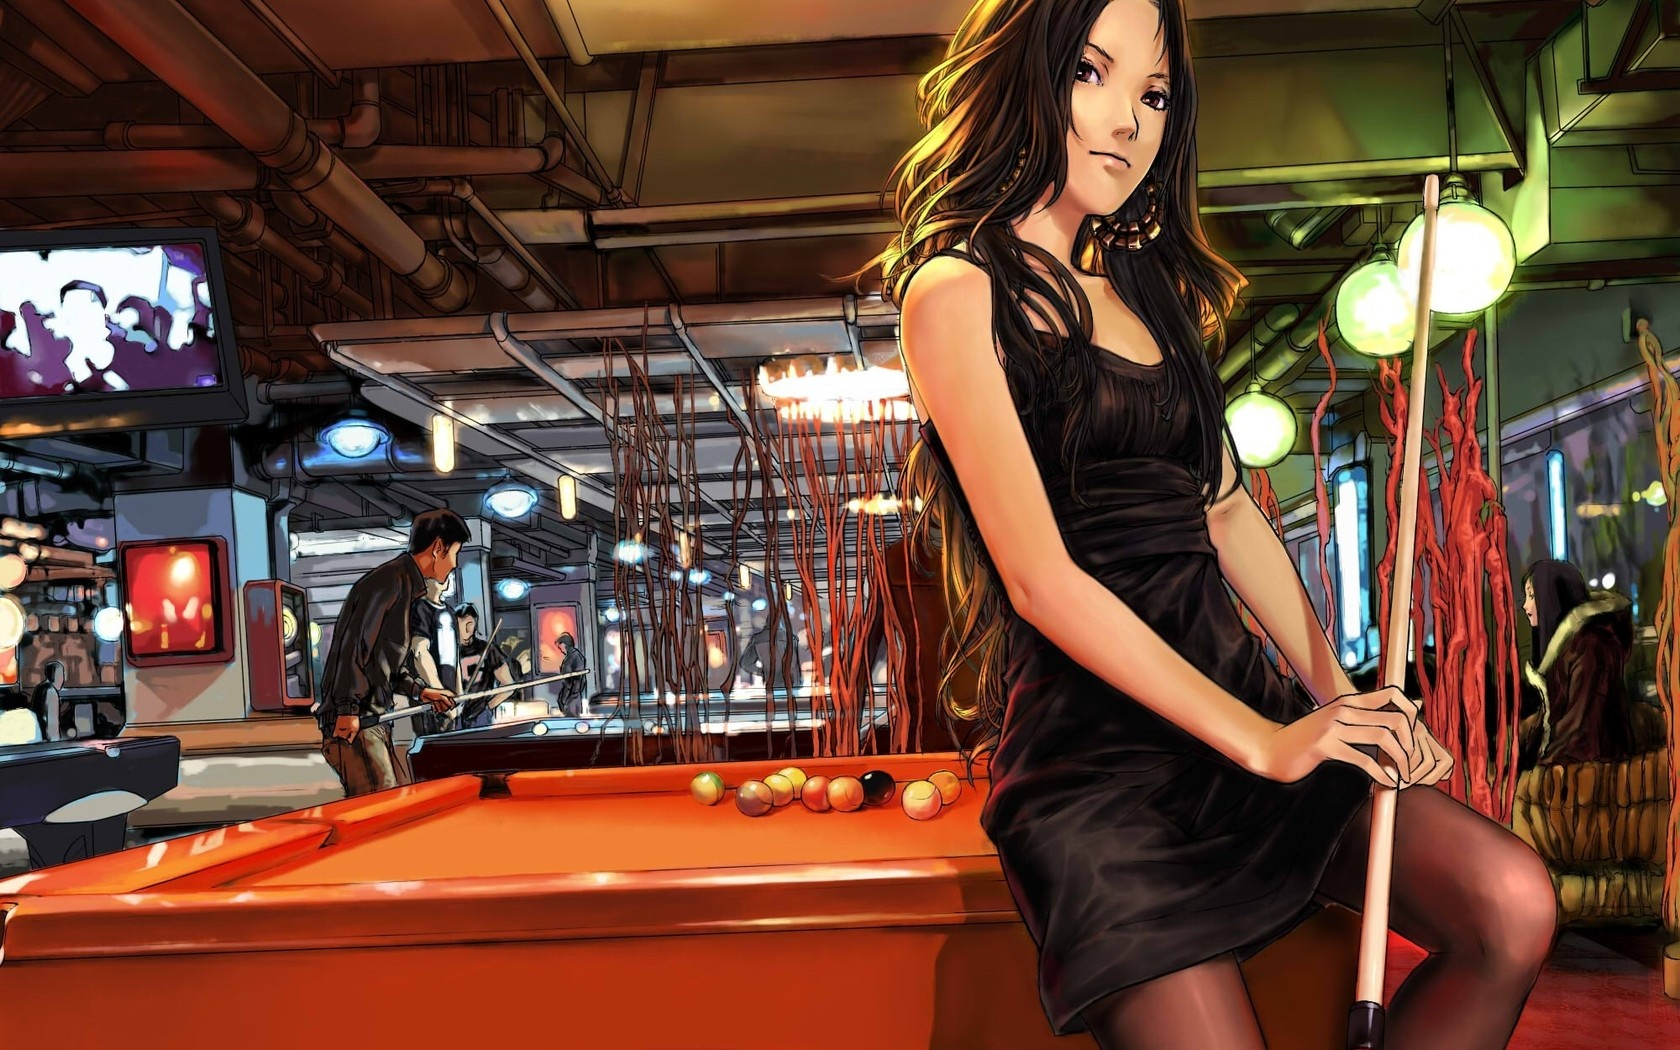 billiards anime wallpaper - photo #3